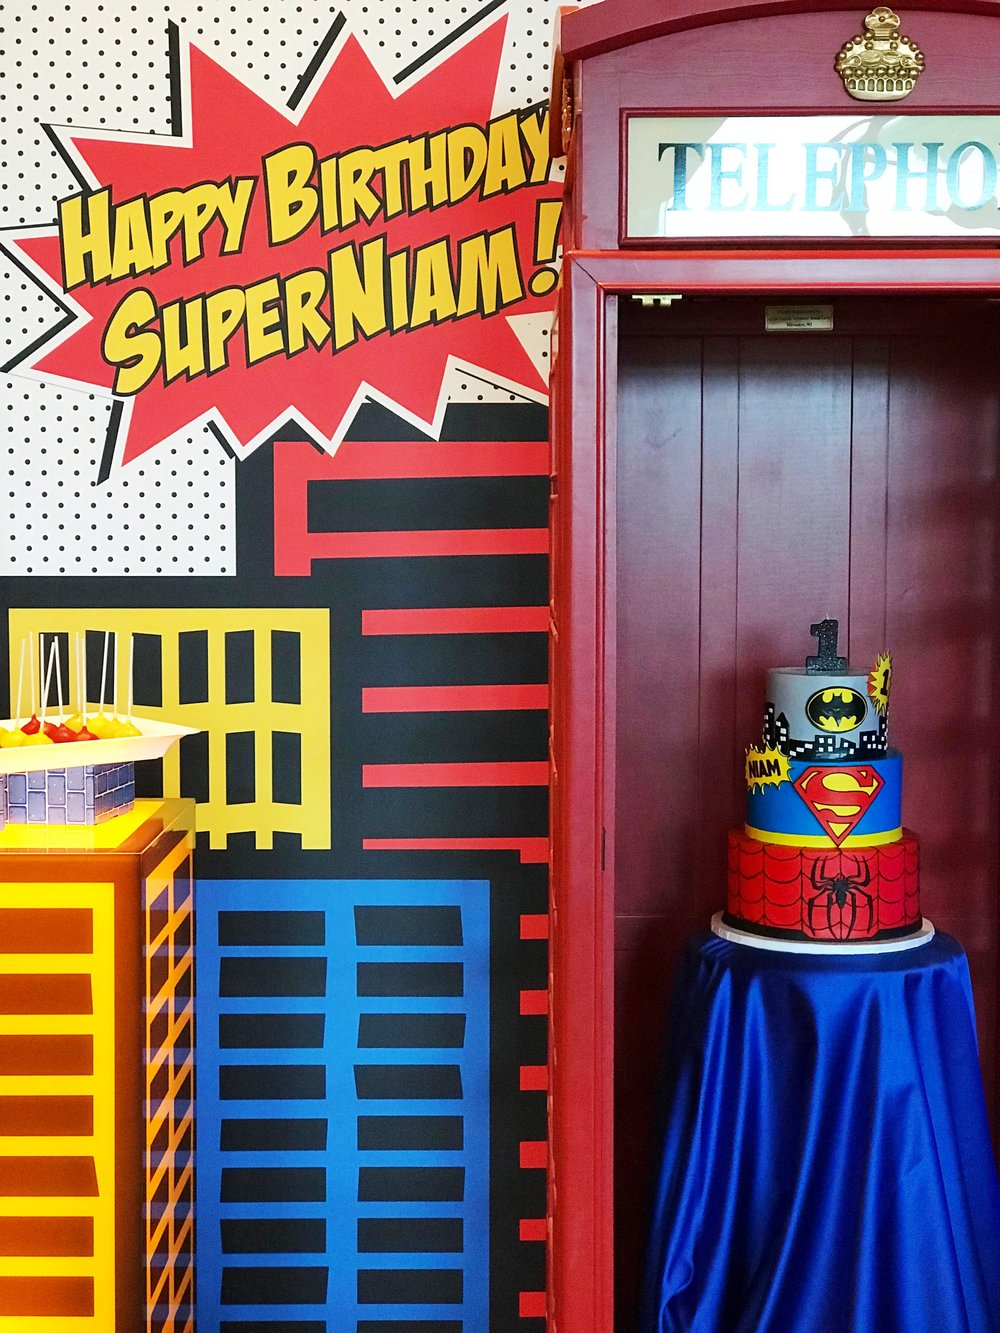 A SUPER 1st Birthday Bash